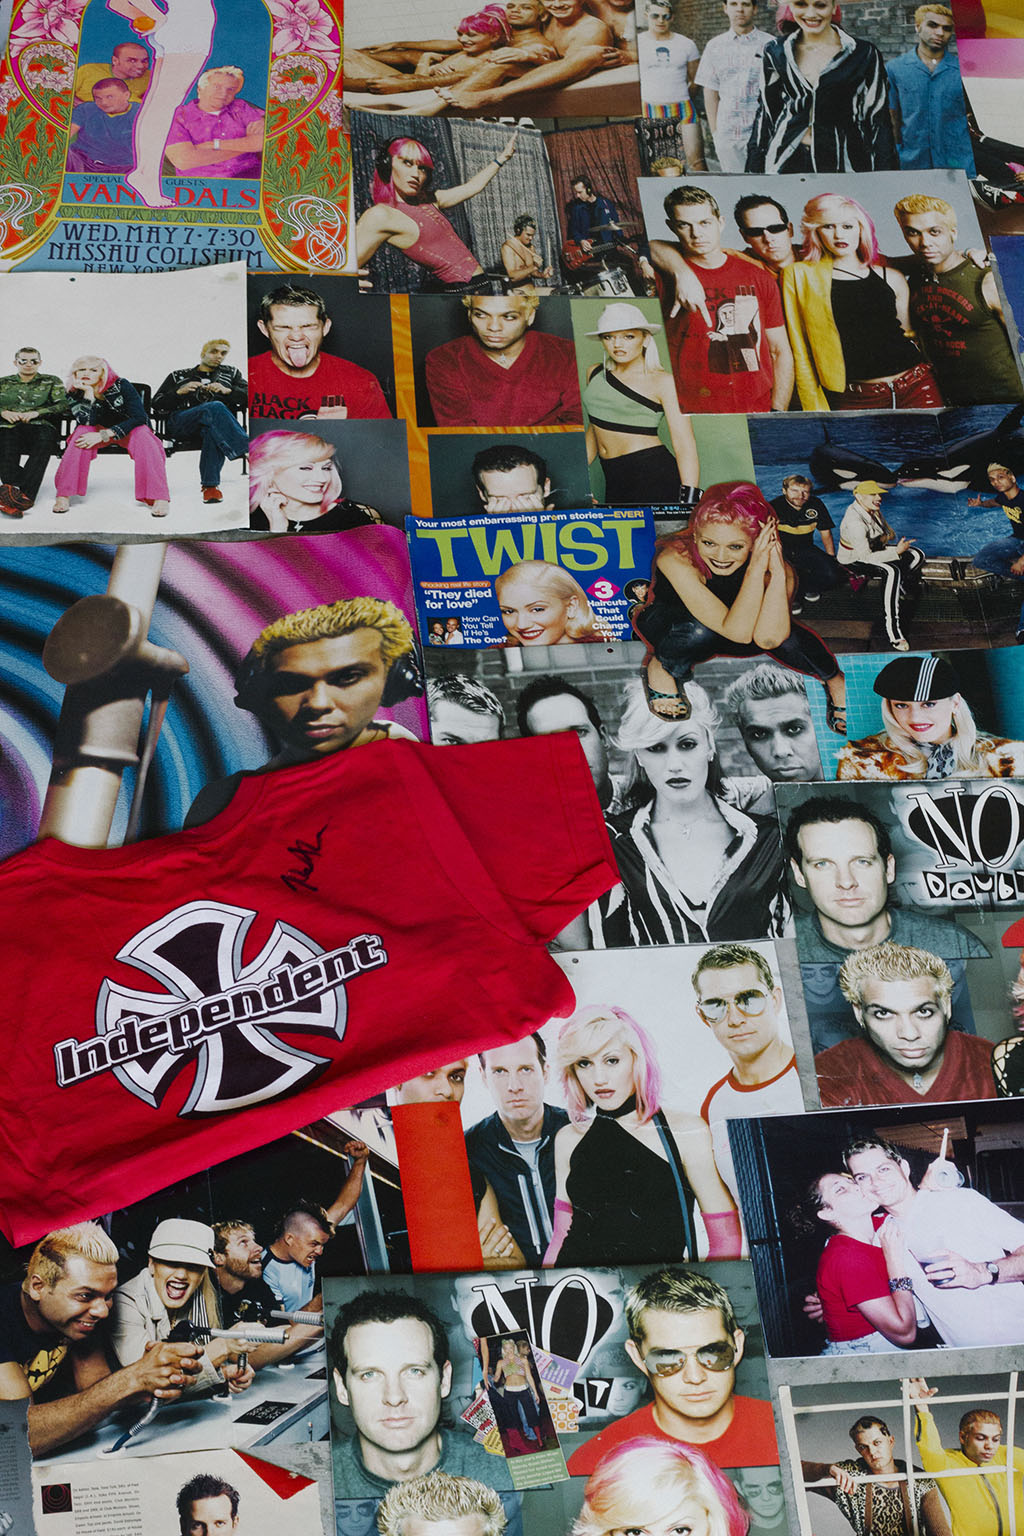 No Doubt magazine articles, photos, autographed t-shirts, that Katy collected